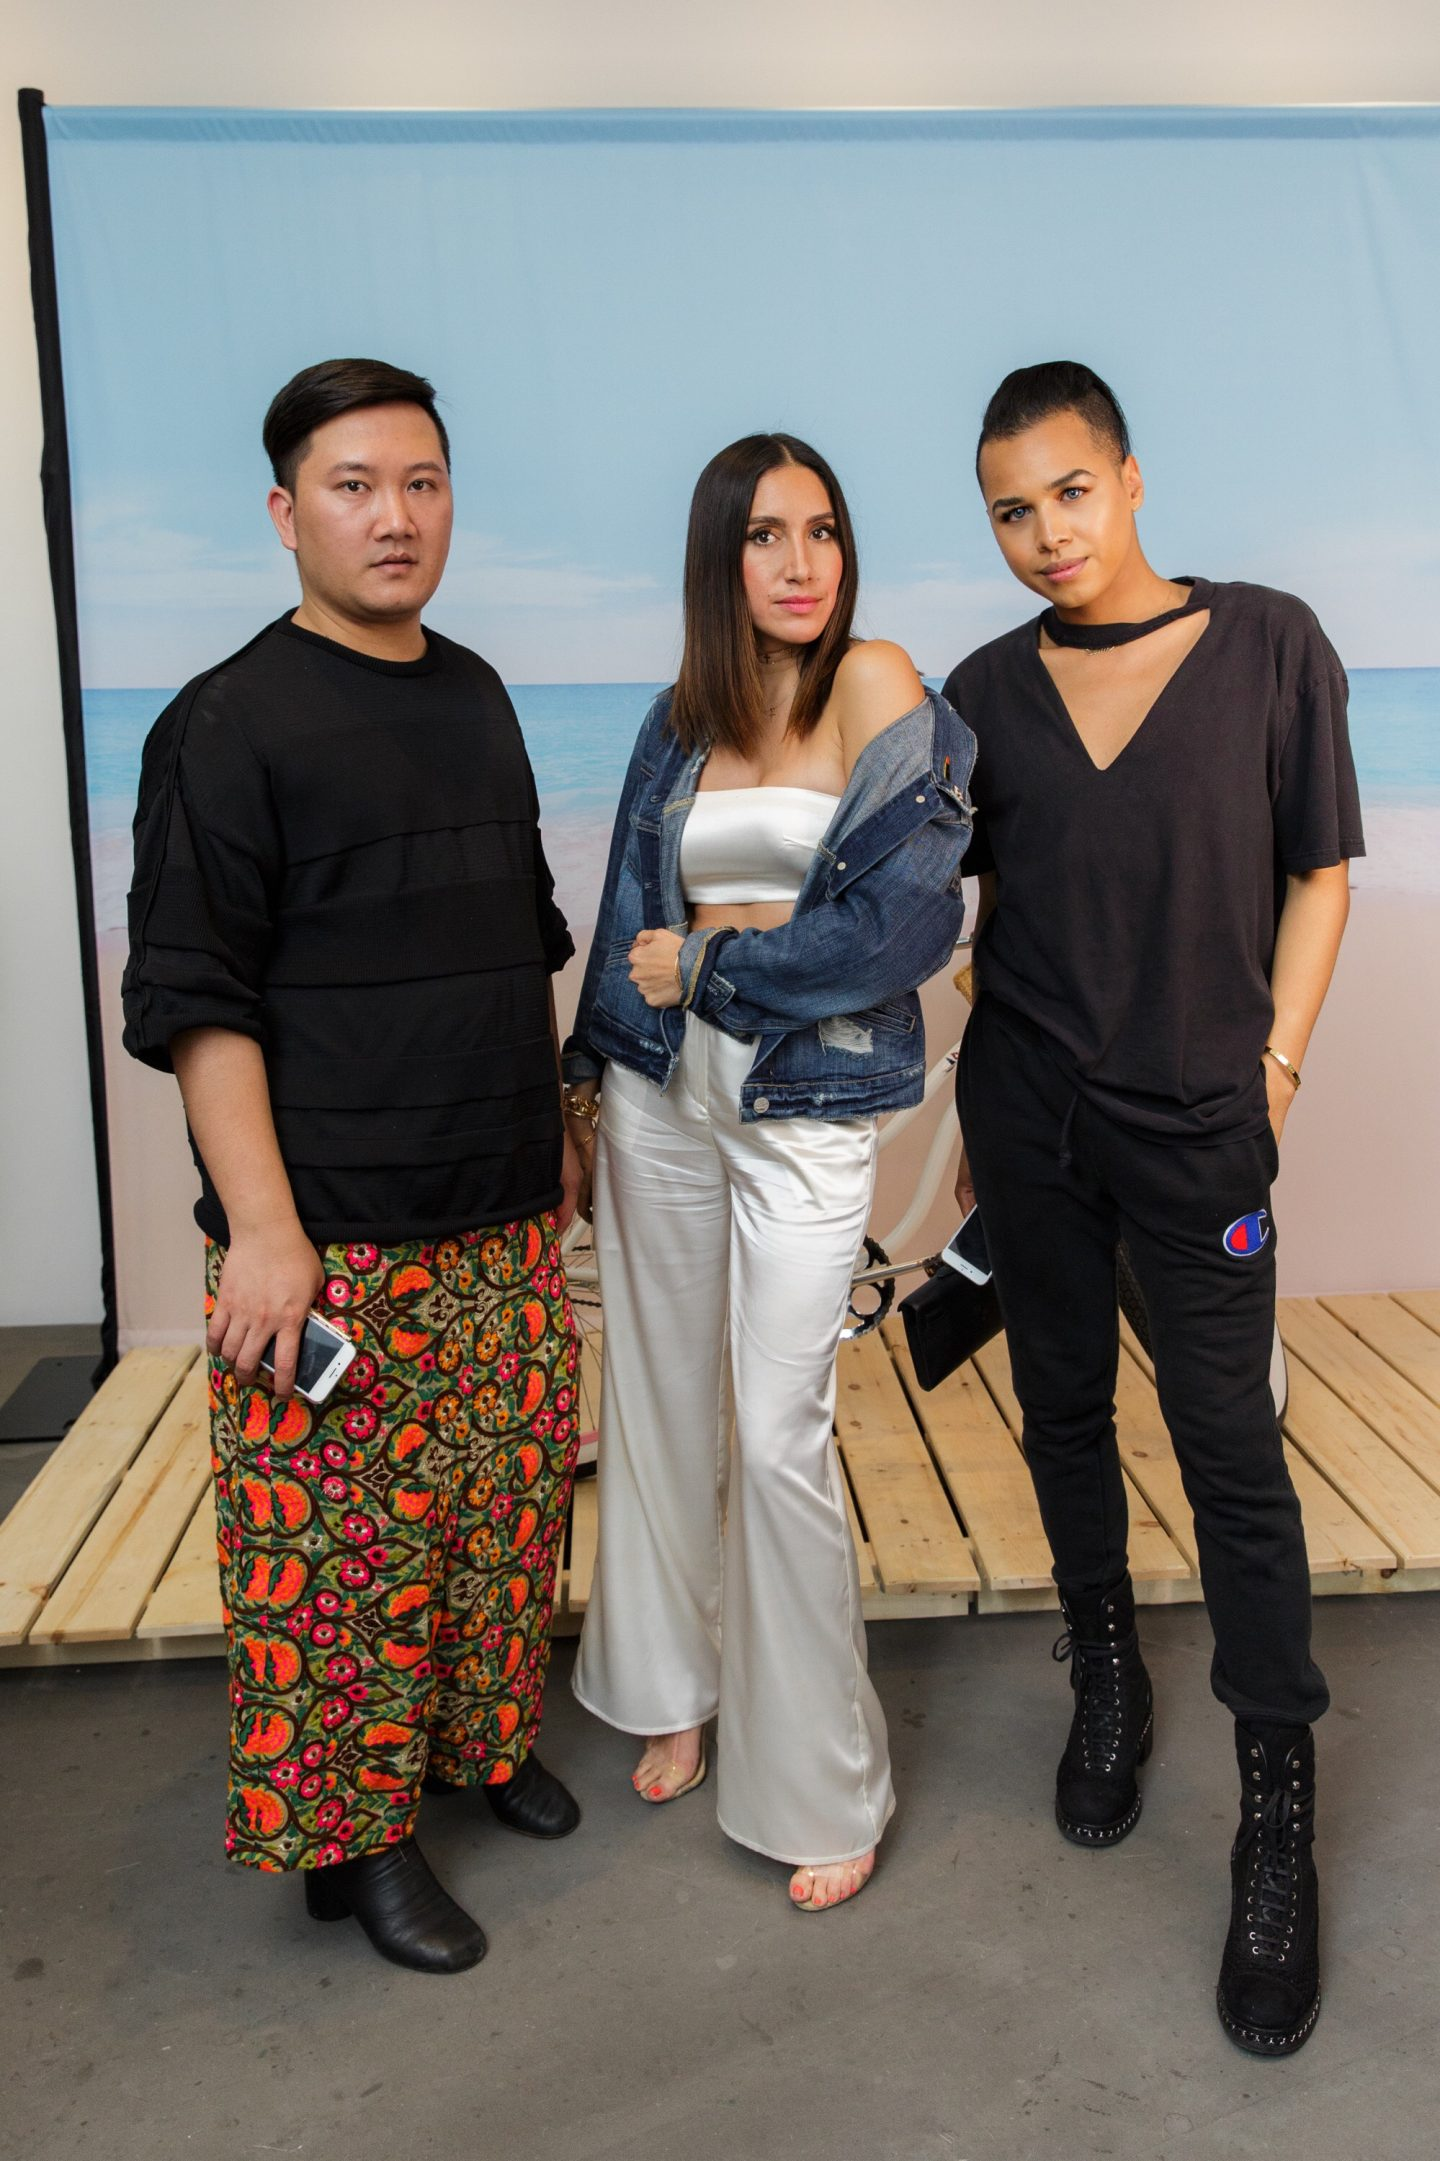 Jay Sturt, Tony Pham, Jen Atkin Hair Stylist @ Launch of Dyson Supersonic Blowdryer Toronto, ON